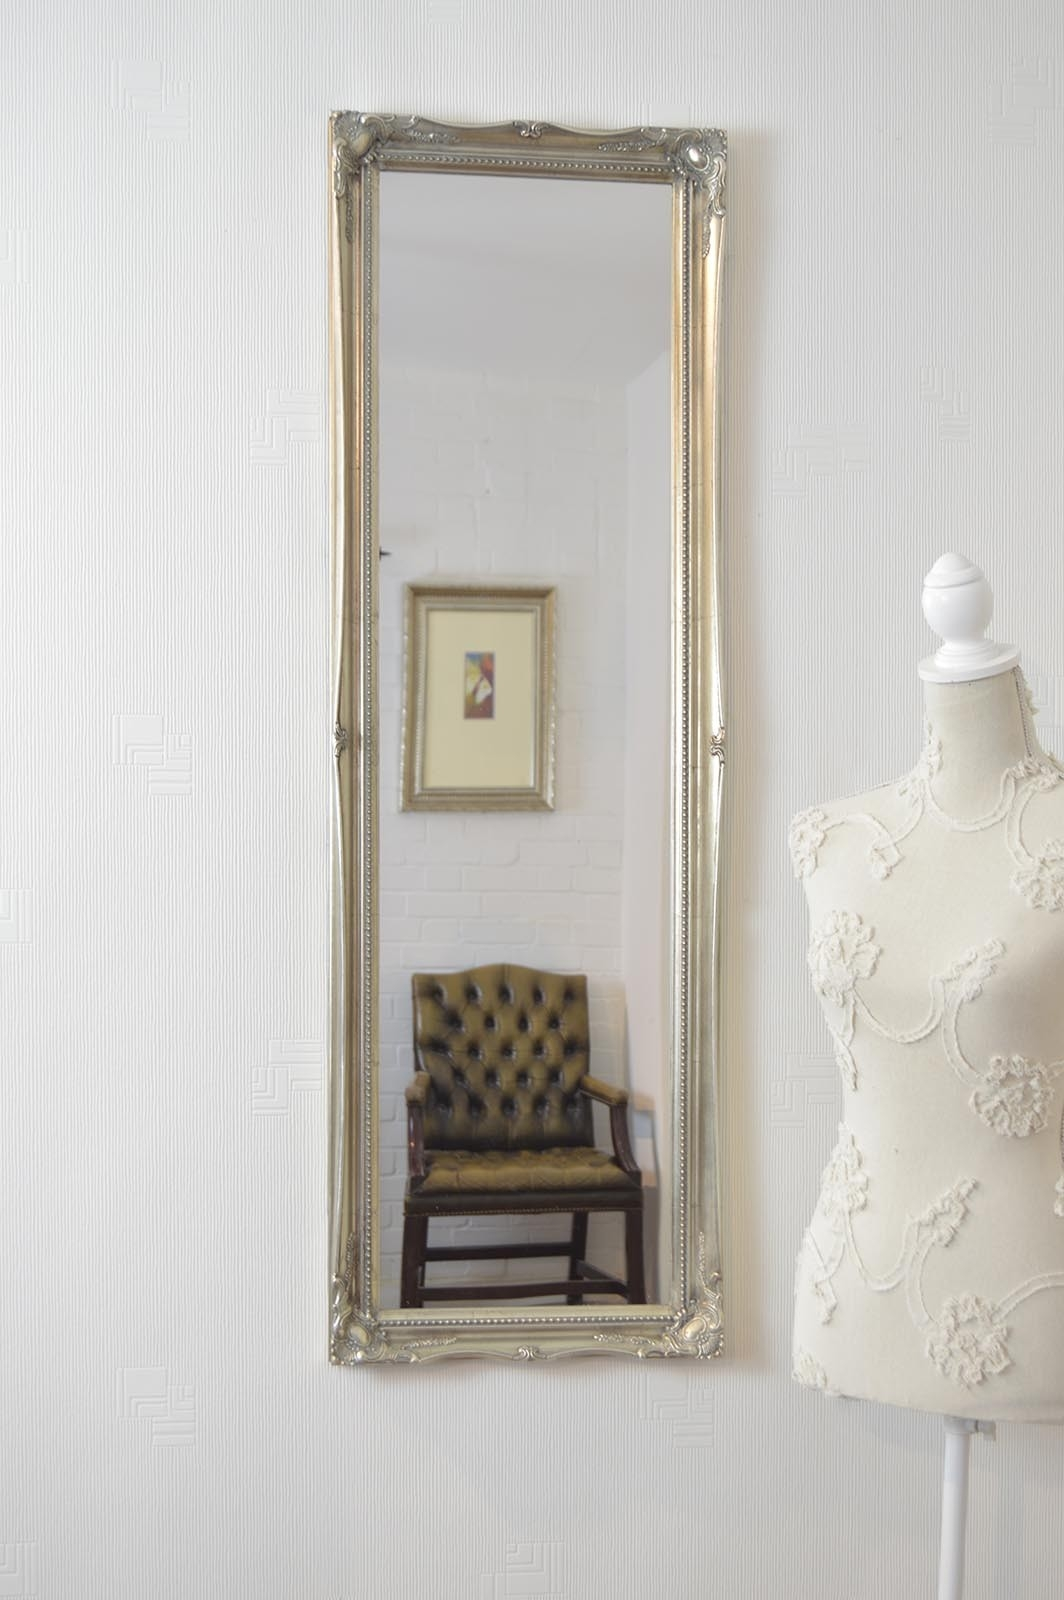 Large Silver Antique Style Dress Wall Mounted Mirror Rectangle Throughout Antique Style Mirrors Wall (View 14 of 15)